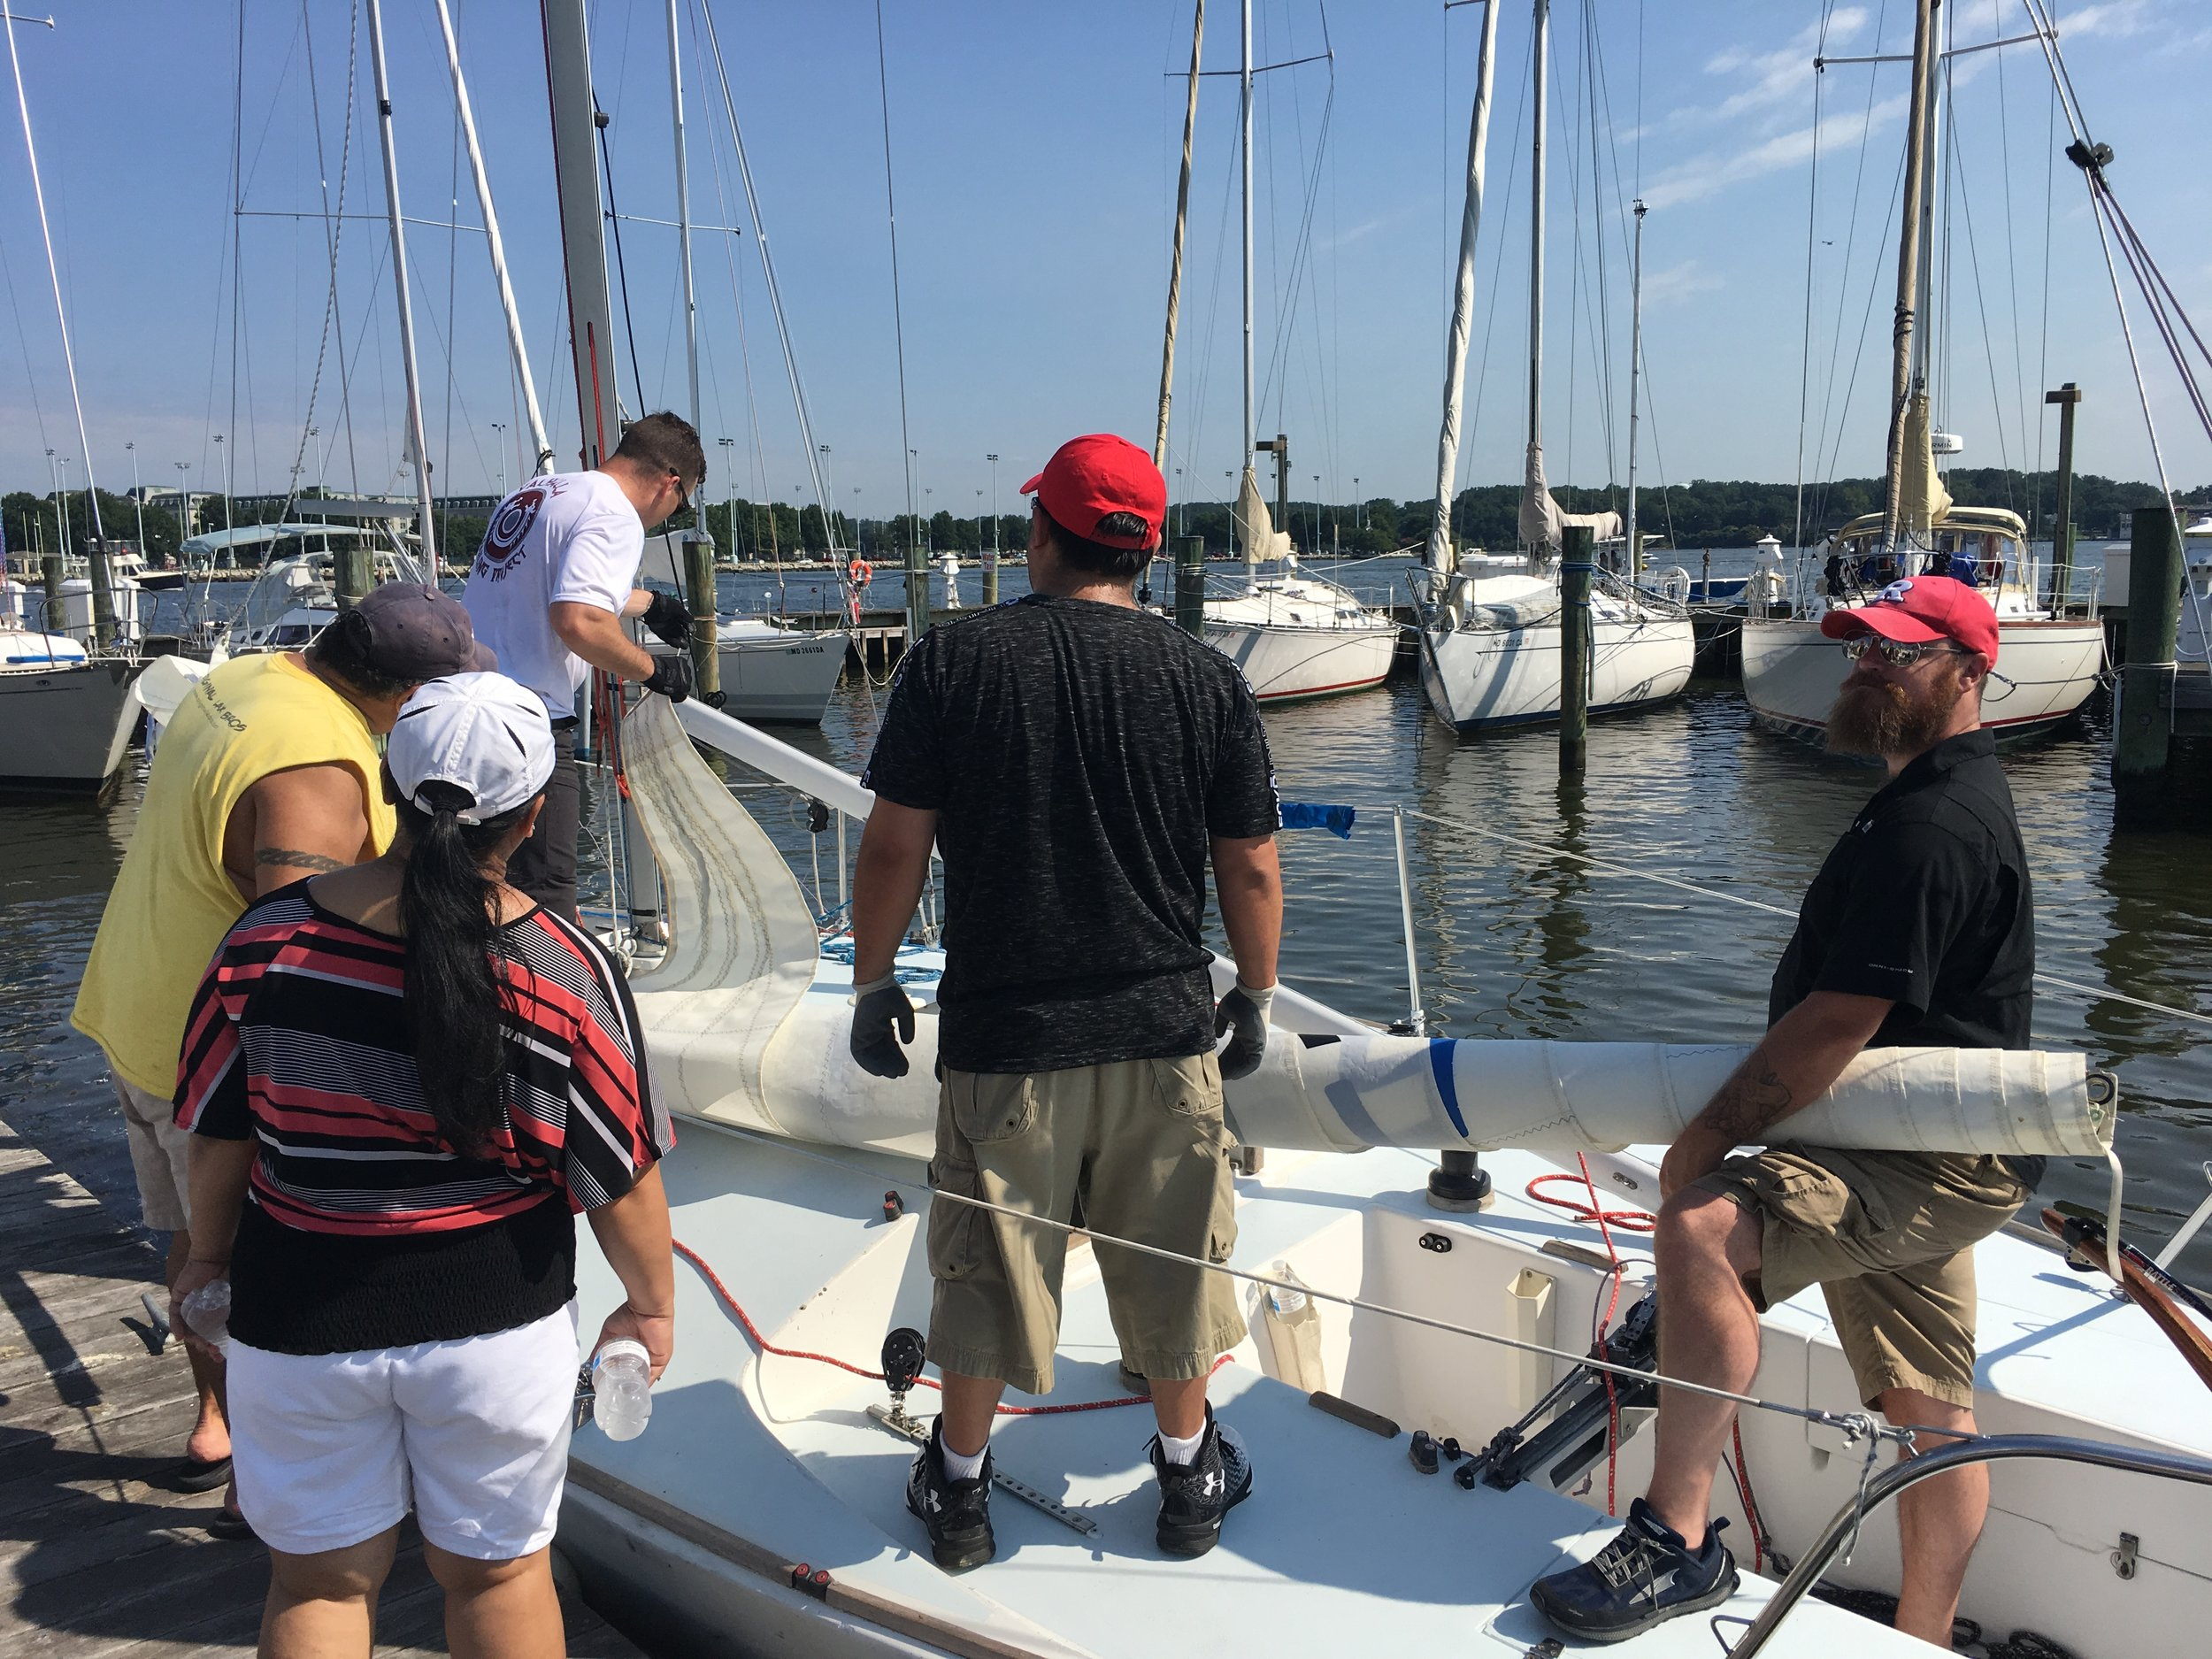 Volunteer with us - We're always looking for help with our clinics and events from shore support and coordination to sailing instruction.